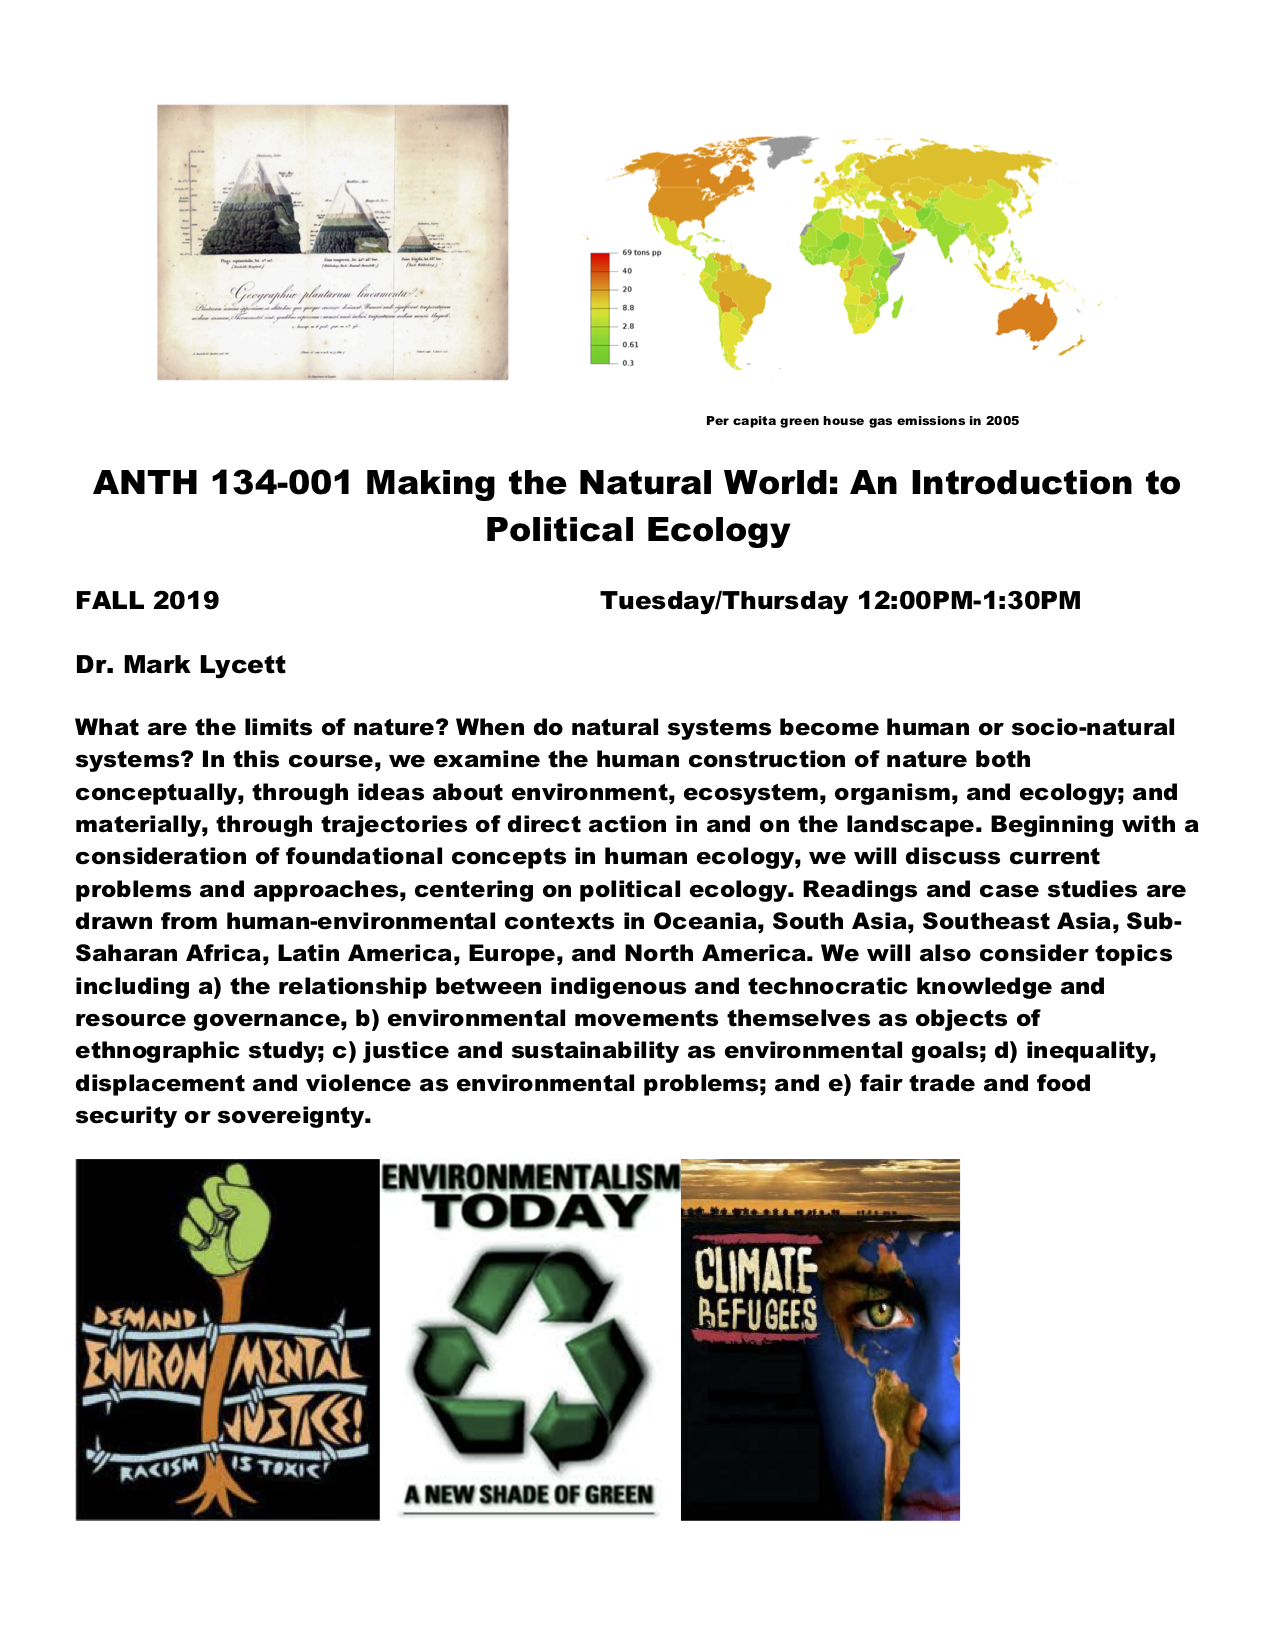 Making the Natural World Course Flyer